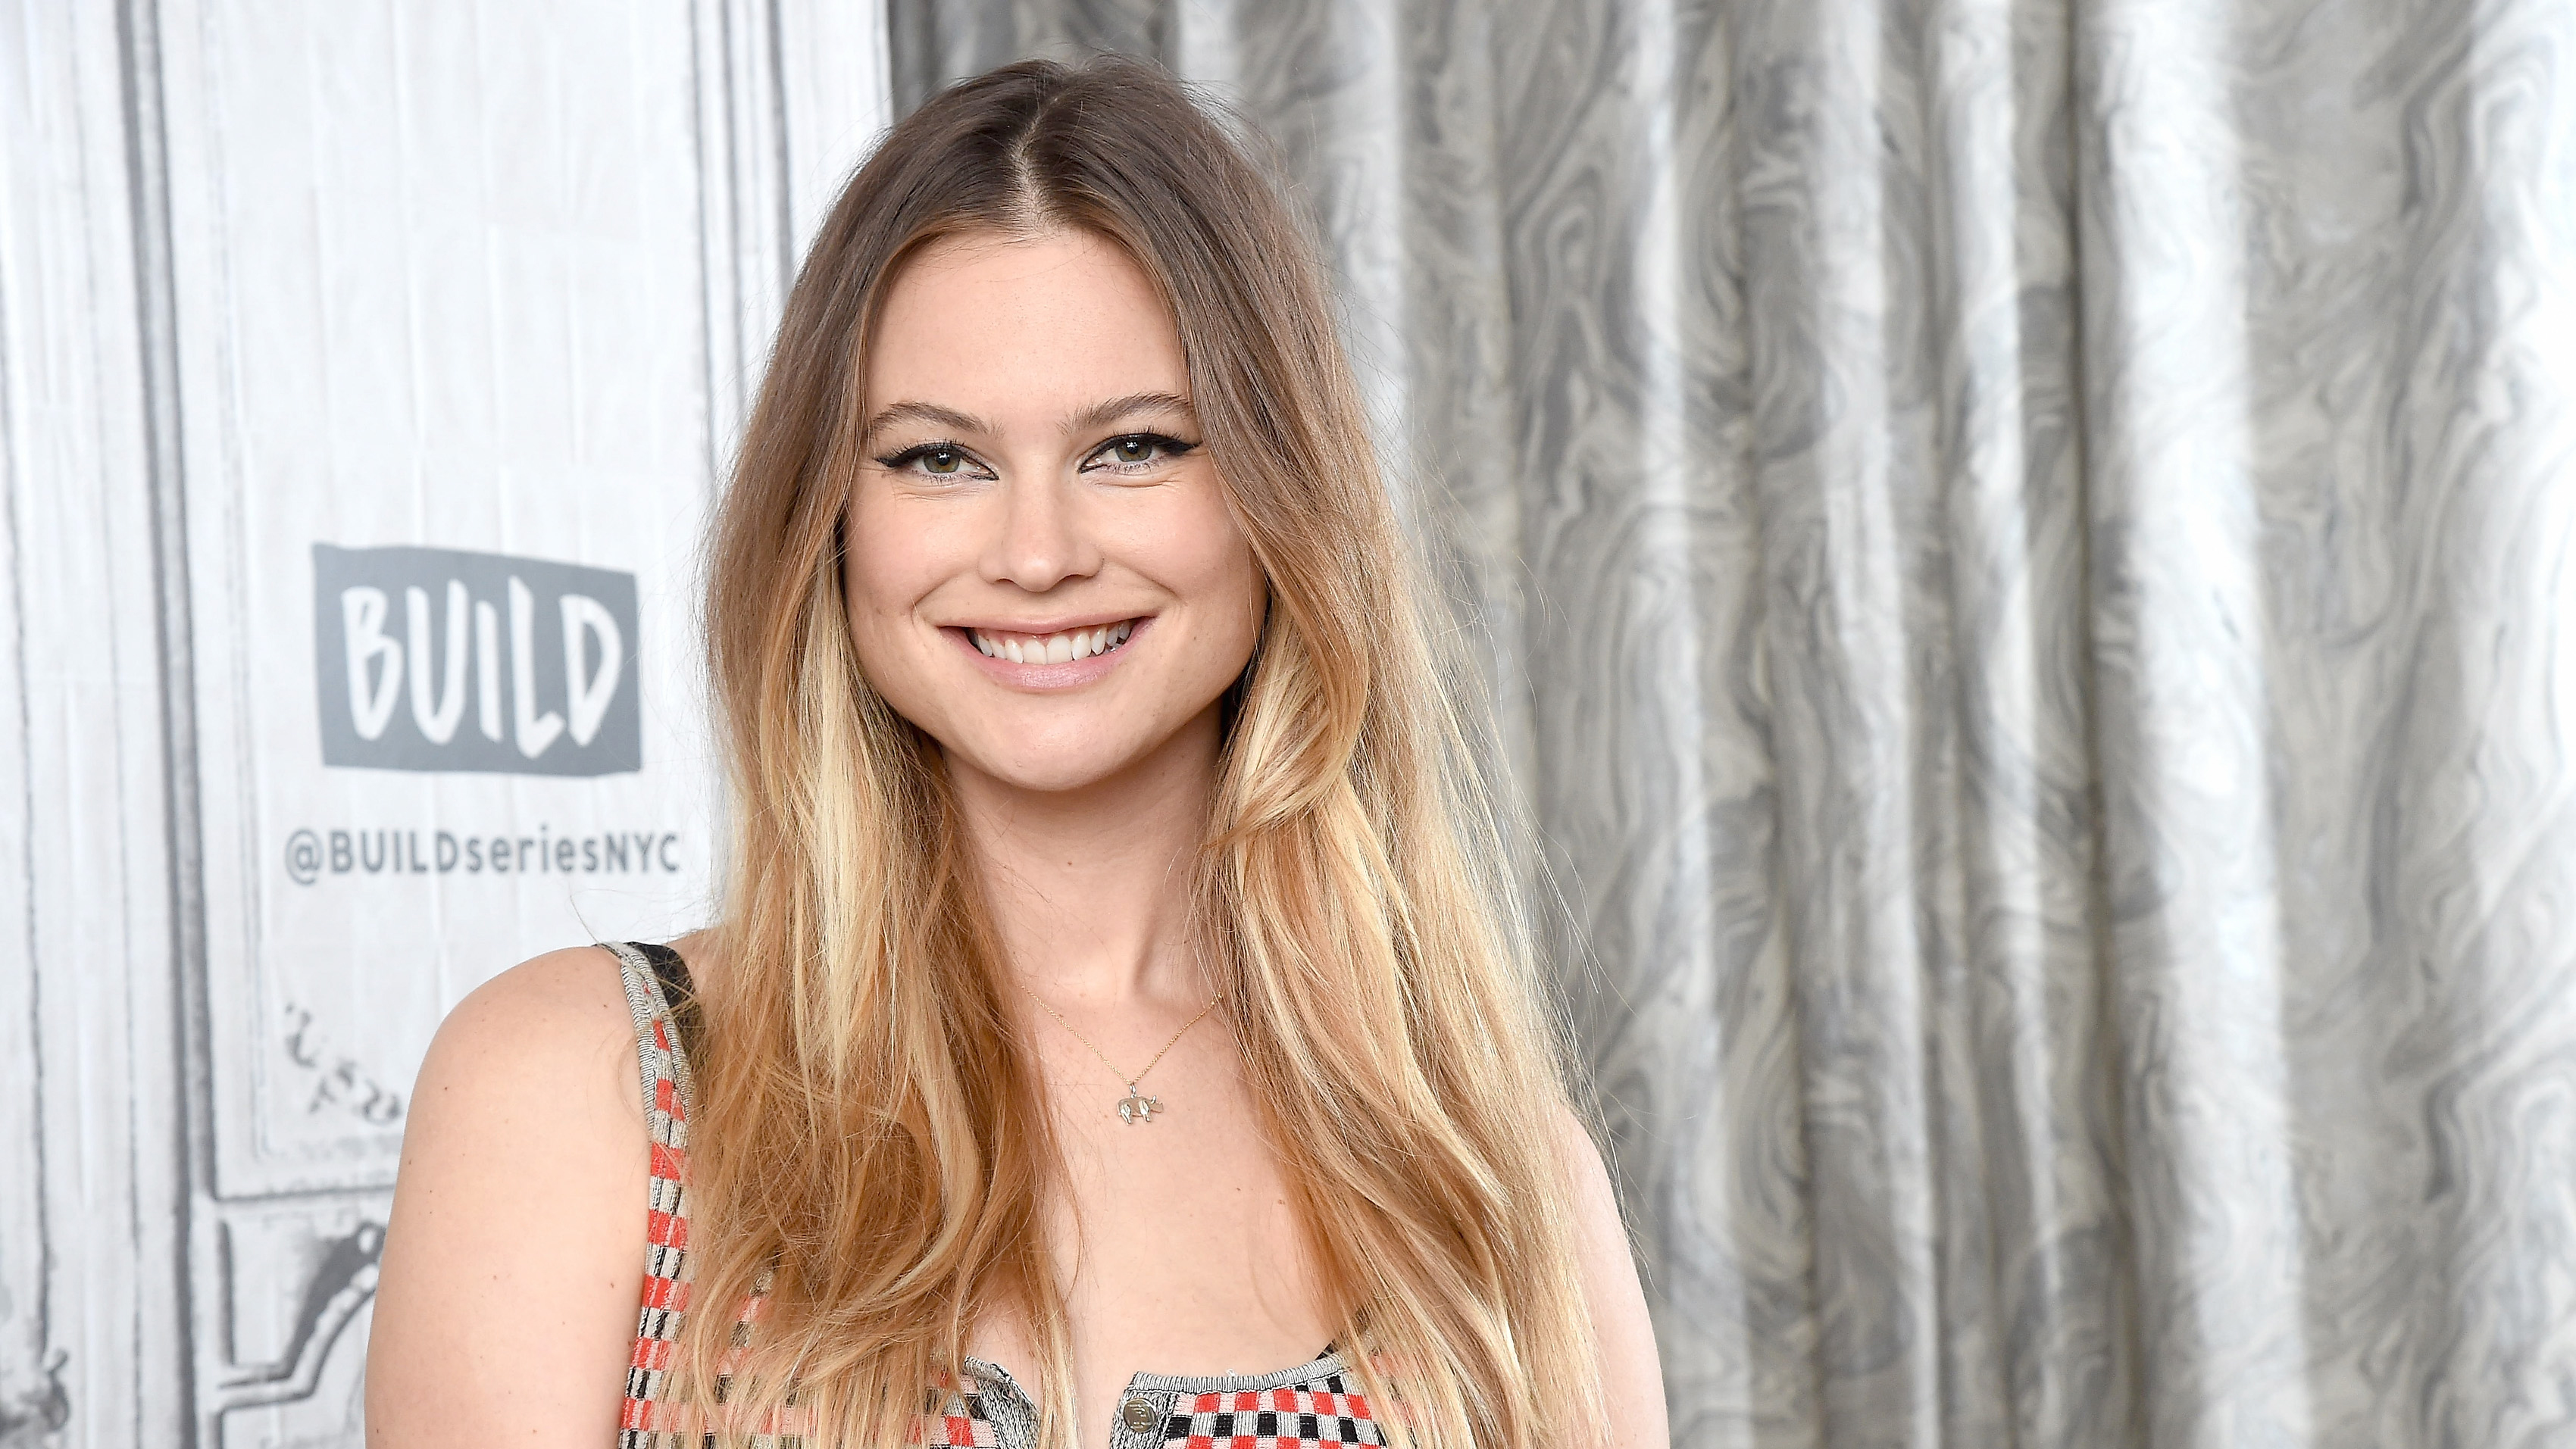 Westlake Legal Group BehatiP Behati Prinsloo shares rare photo of daughters on social media New York Post fnc/entertainment fnc Christine Burroni article 18e0c8ee-0a03-5074-818b-bbcfcd6e7e5f